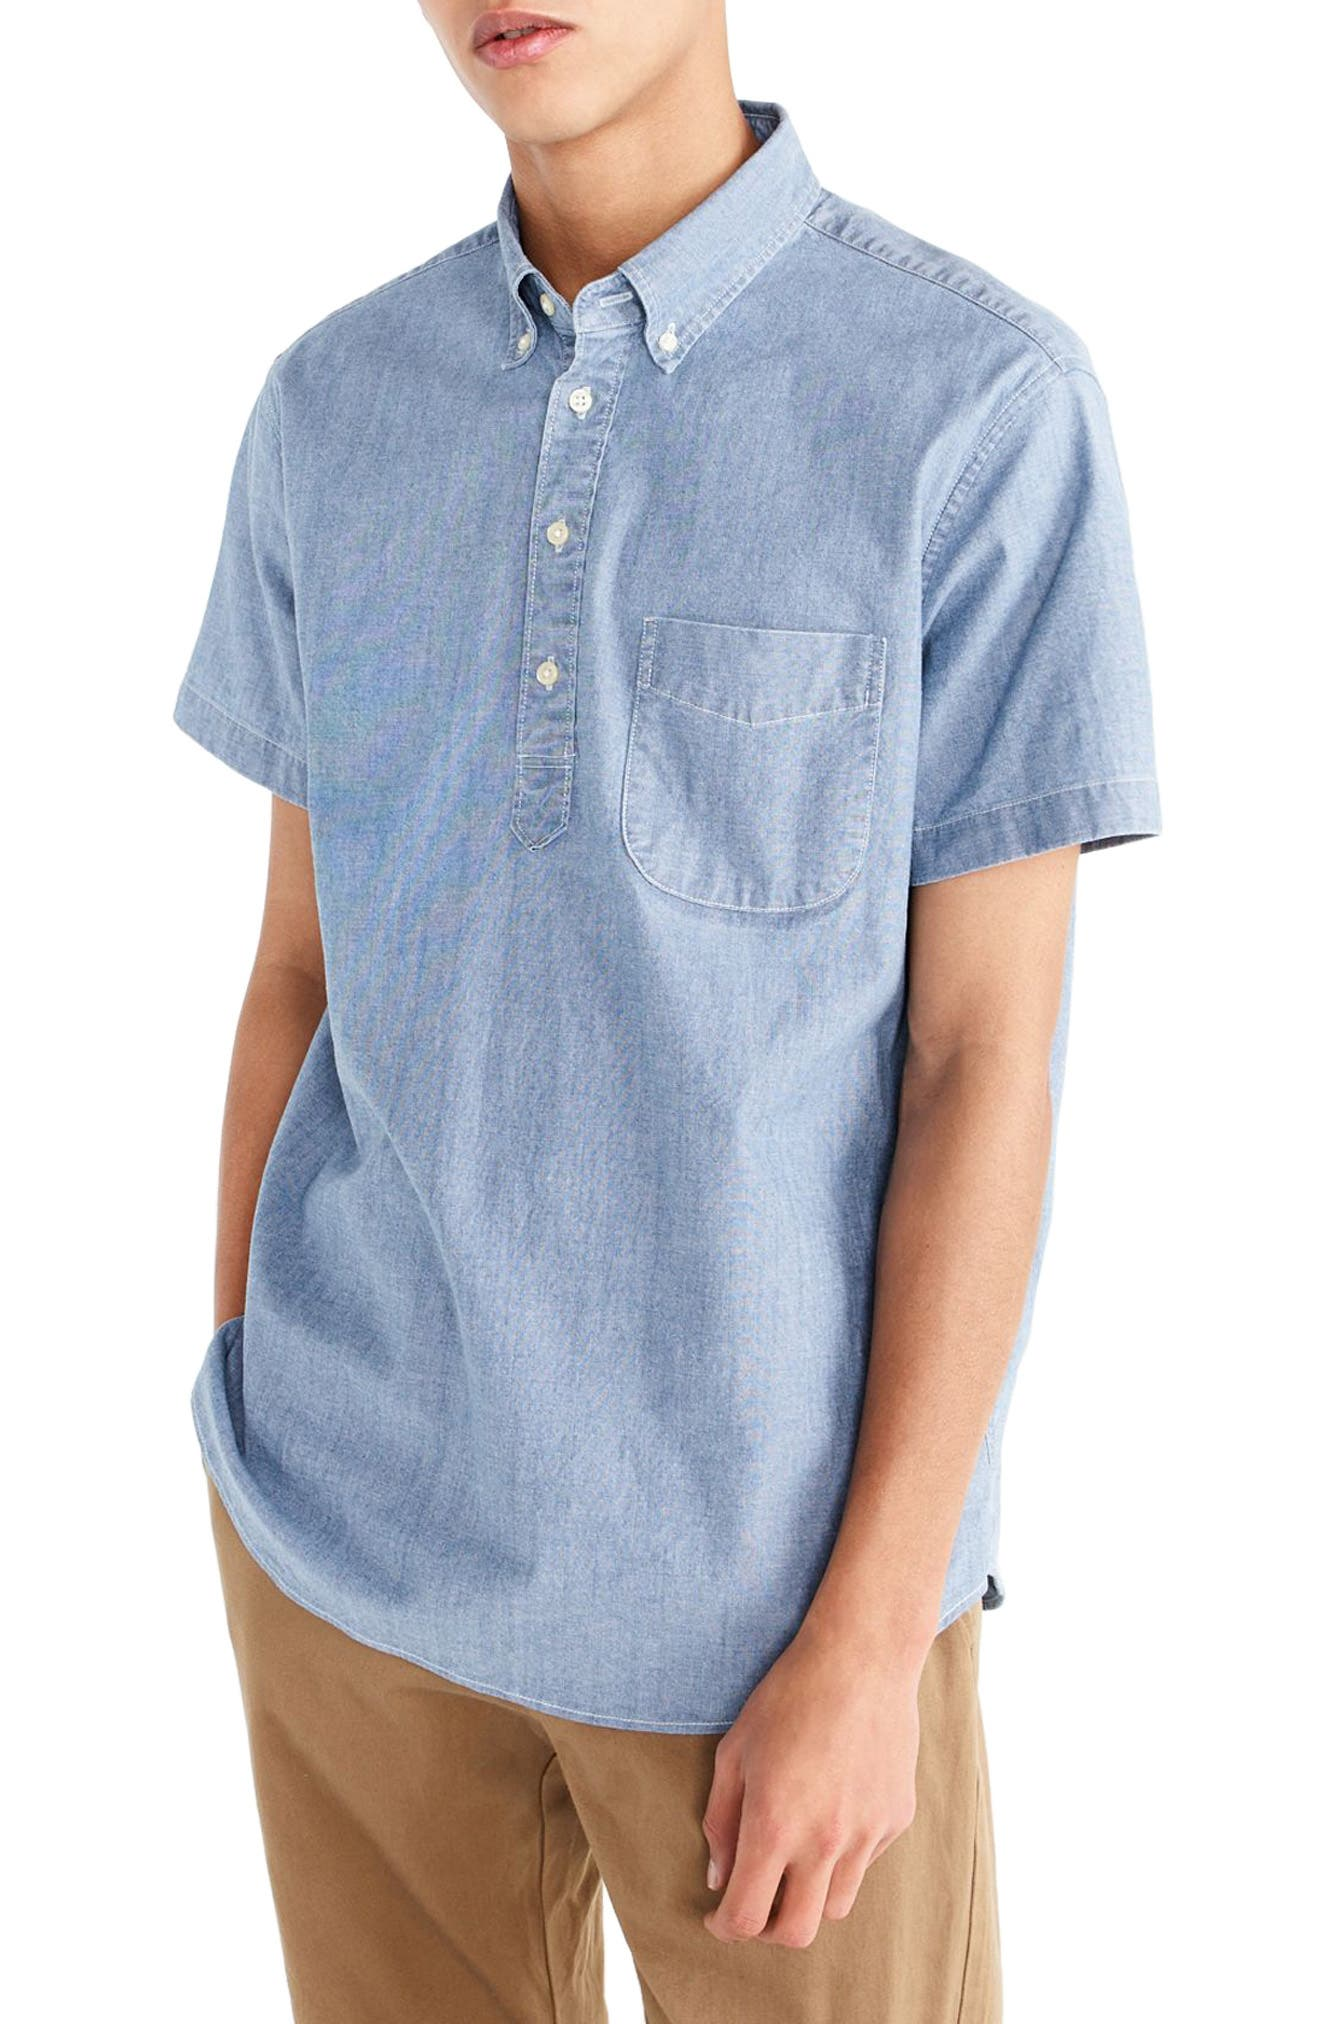 J.Crew Short Sleeve Stretch Chambray Popover Shirt,                             Main thumbnail 1, color,                             Indigo